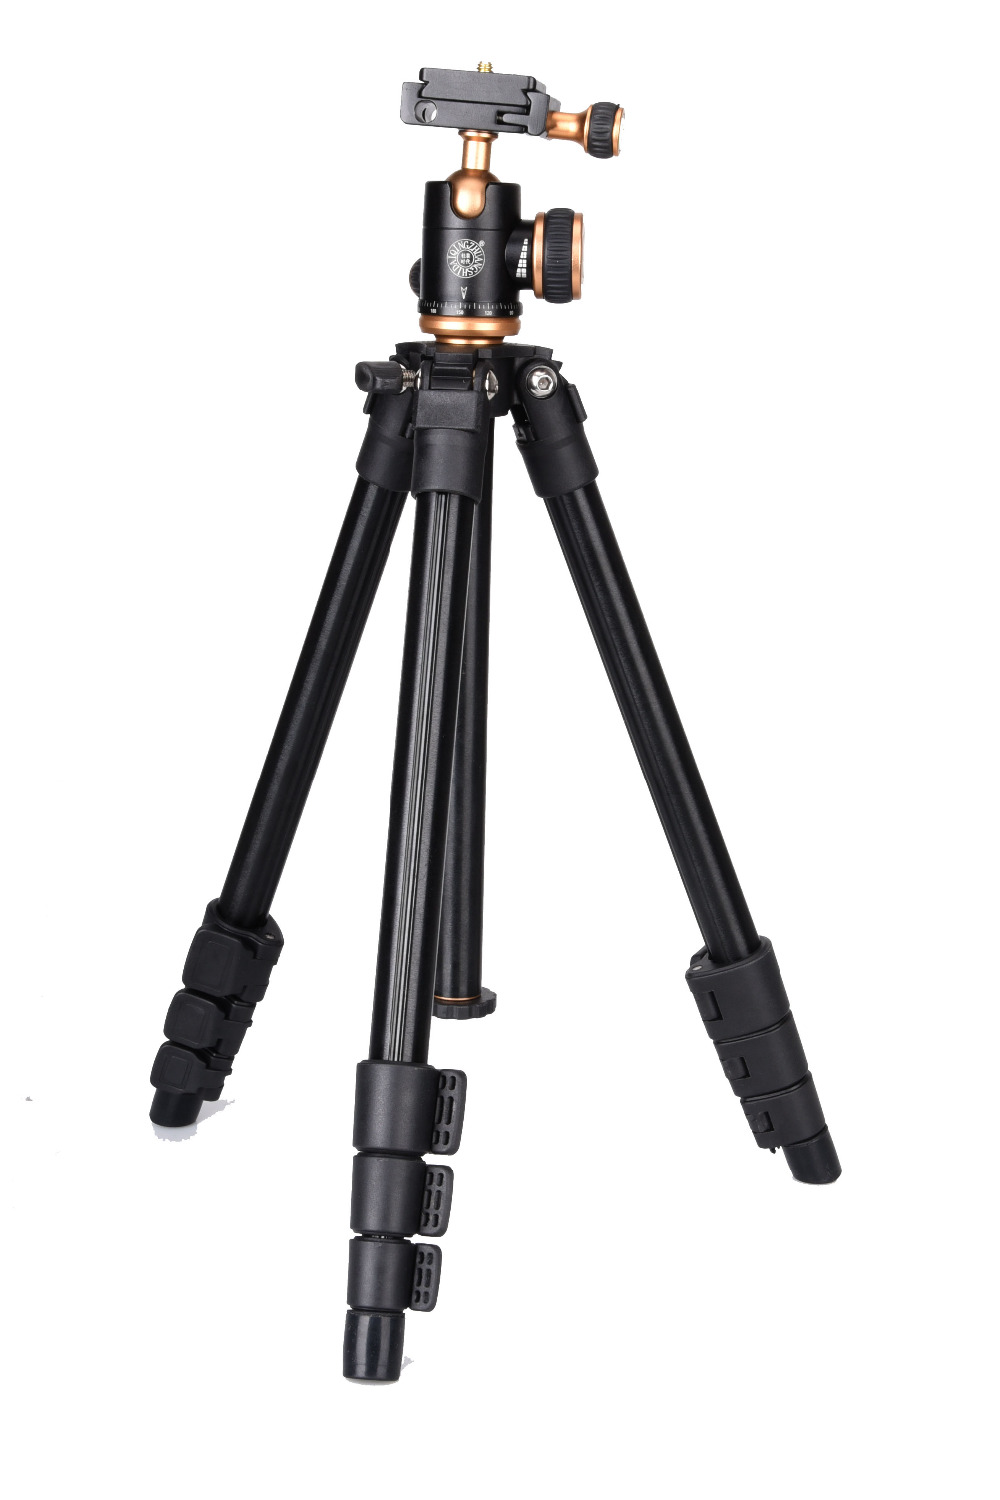 QZSD-Q160S Lightweight Camera Tripod With Multifunctional Ball Head For Canon Nikon Sony DV SLR DSLR Portable Compact Tripod qzsd q668 portable camera tripod with ball head